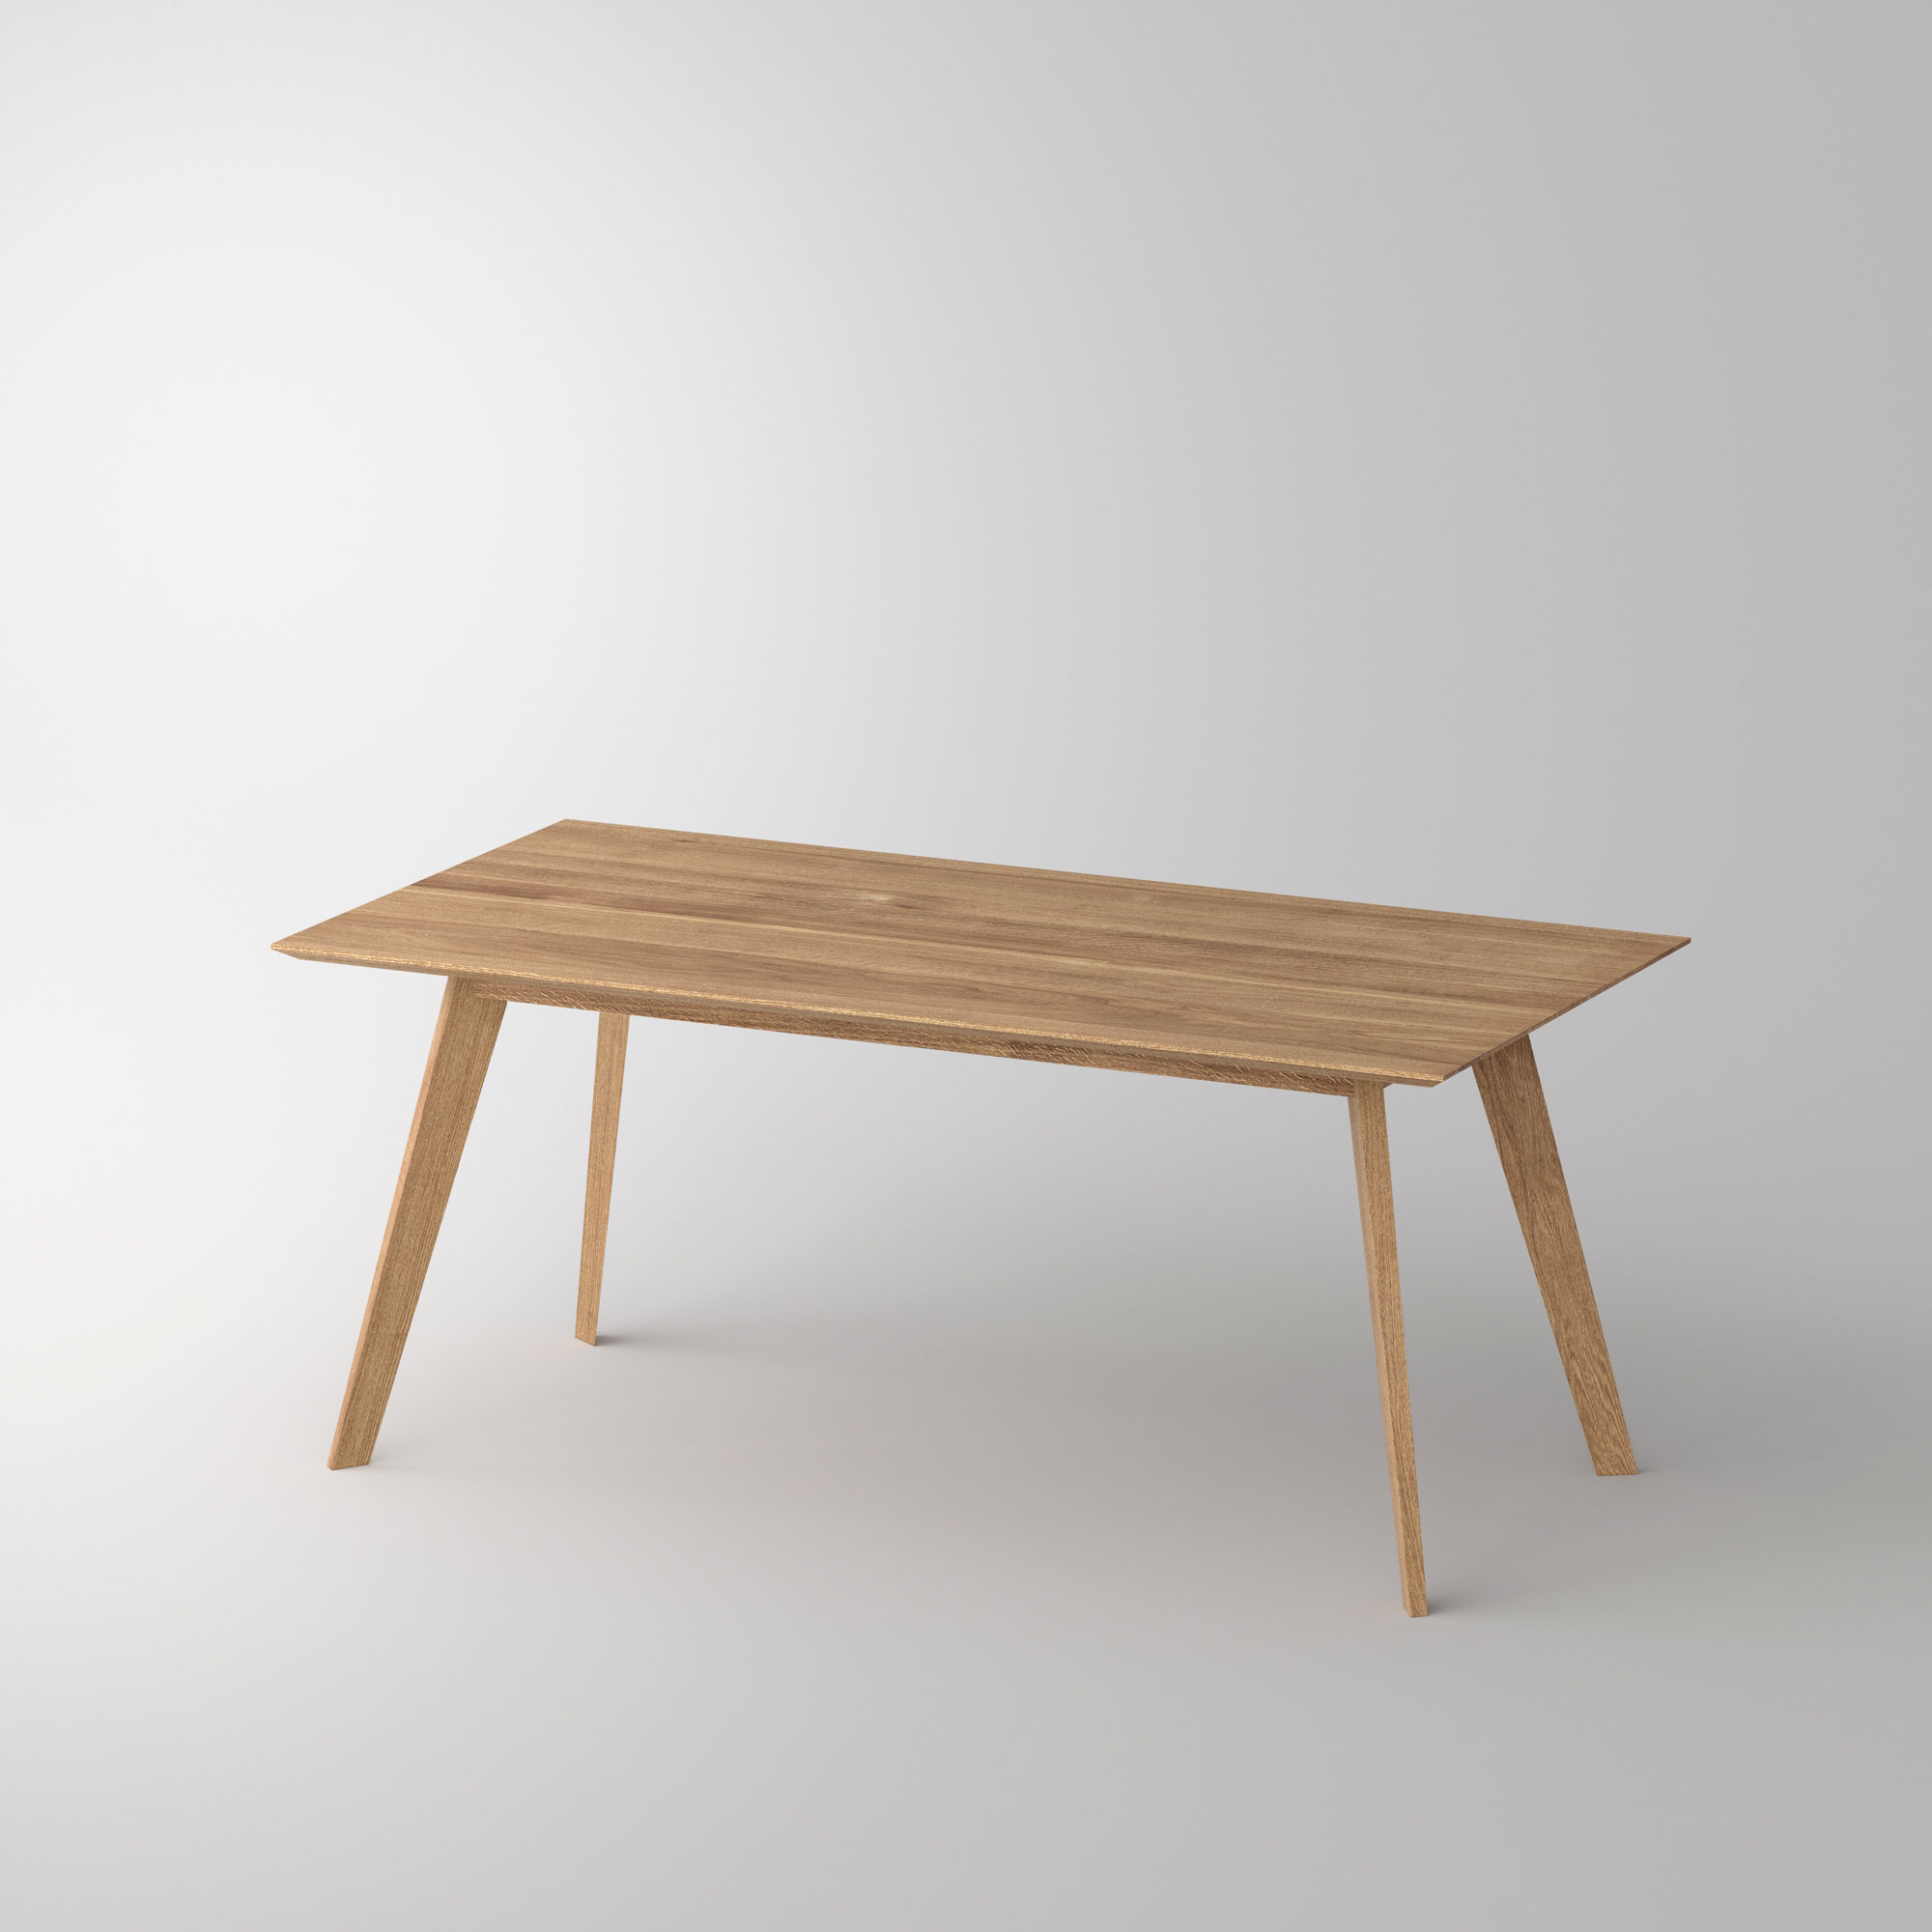 Solid Wood Dining Table CITIUS Cam1 custom made in solid wood by vitamin design